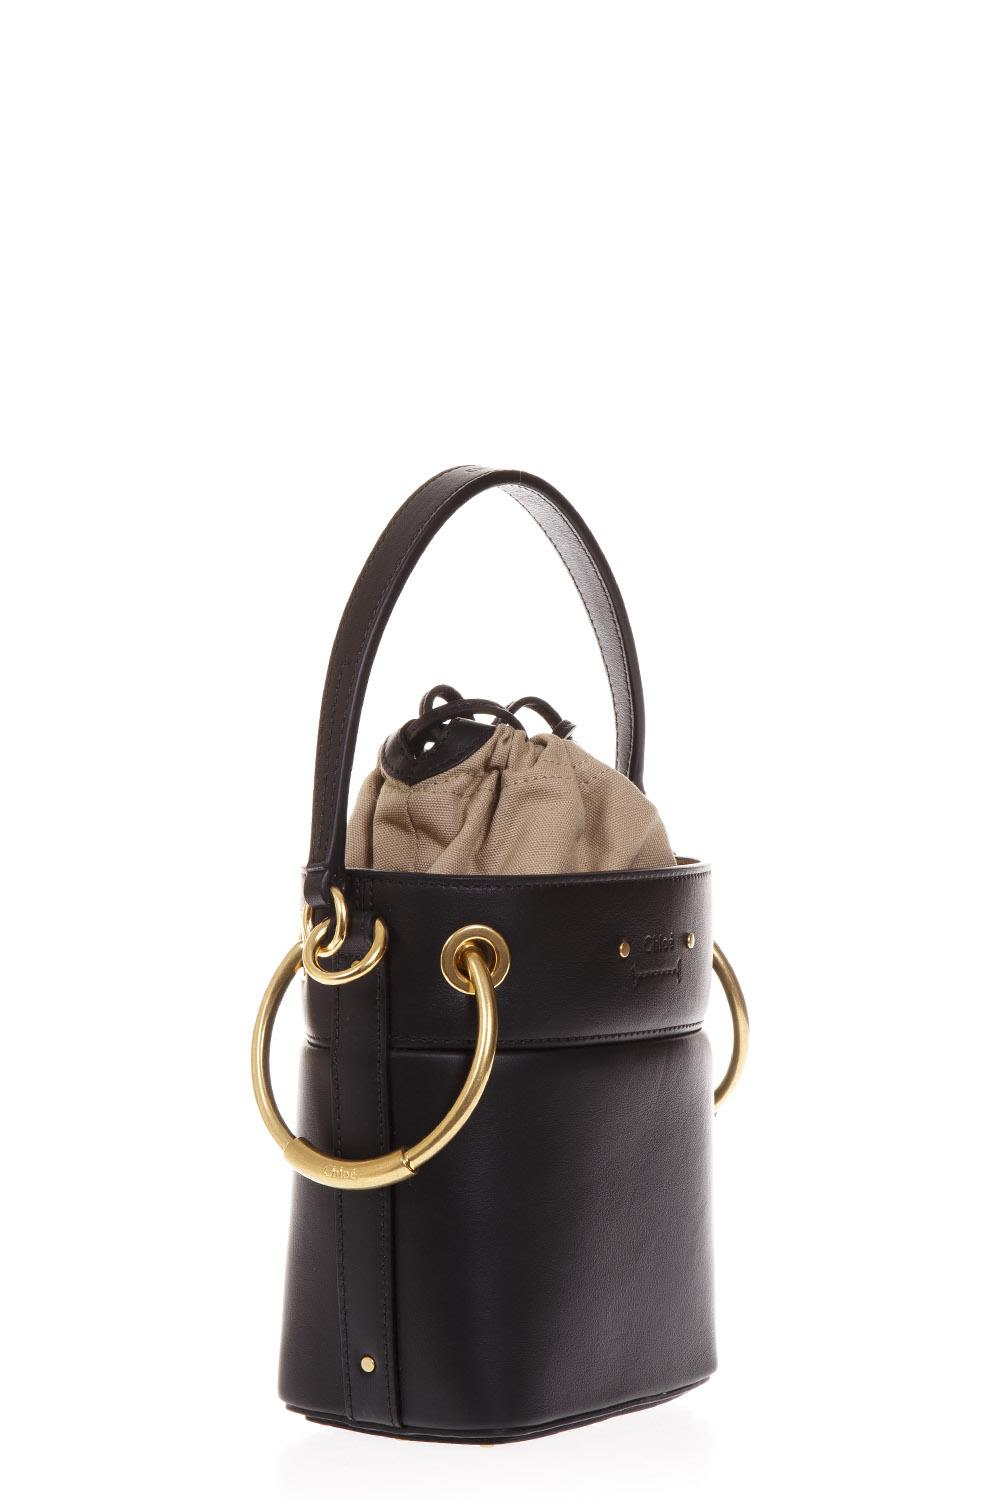 CHLOÉ BLACK DUFFLE BAG IN LEATHER